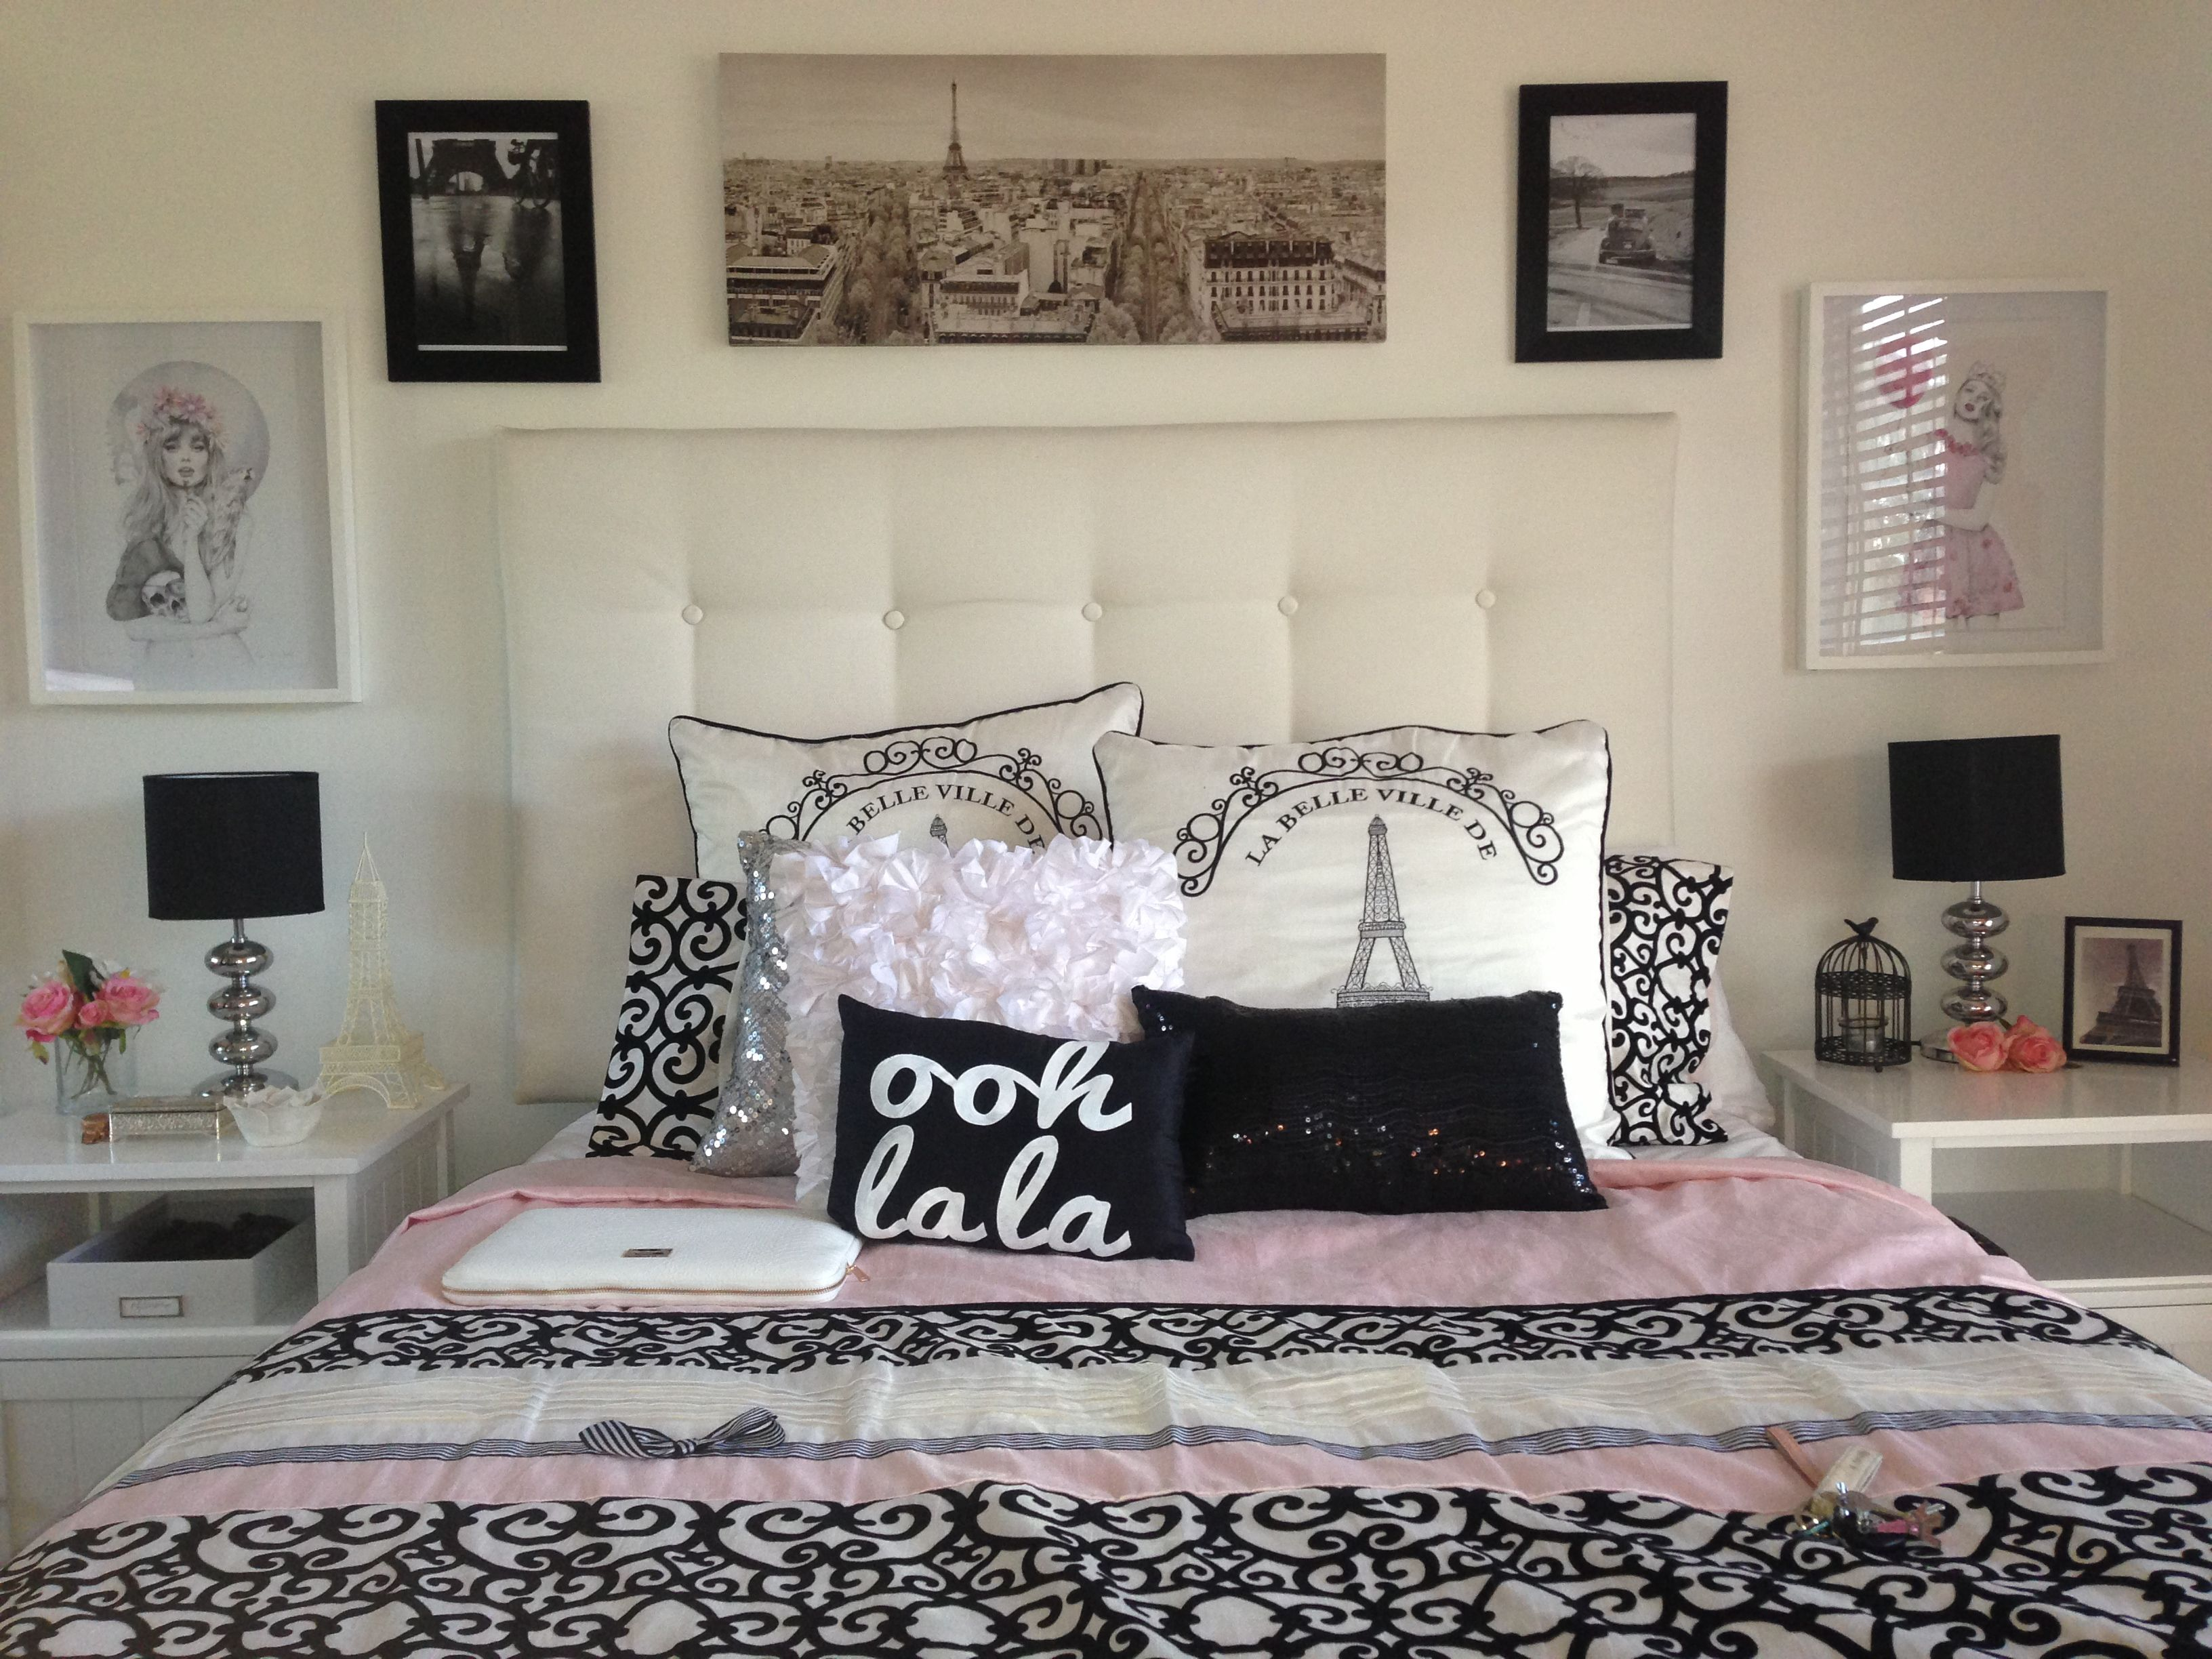 Ordinaire Paris Themed Decorations For A Bedroom   Best Paint For Interior Check More  At Http: